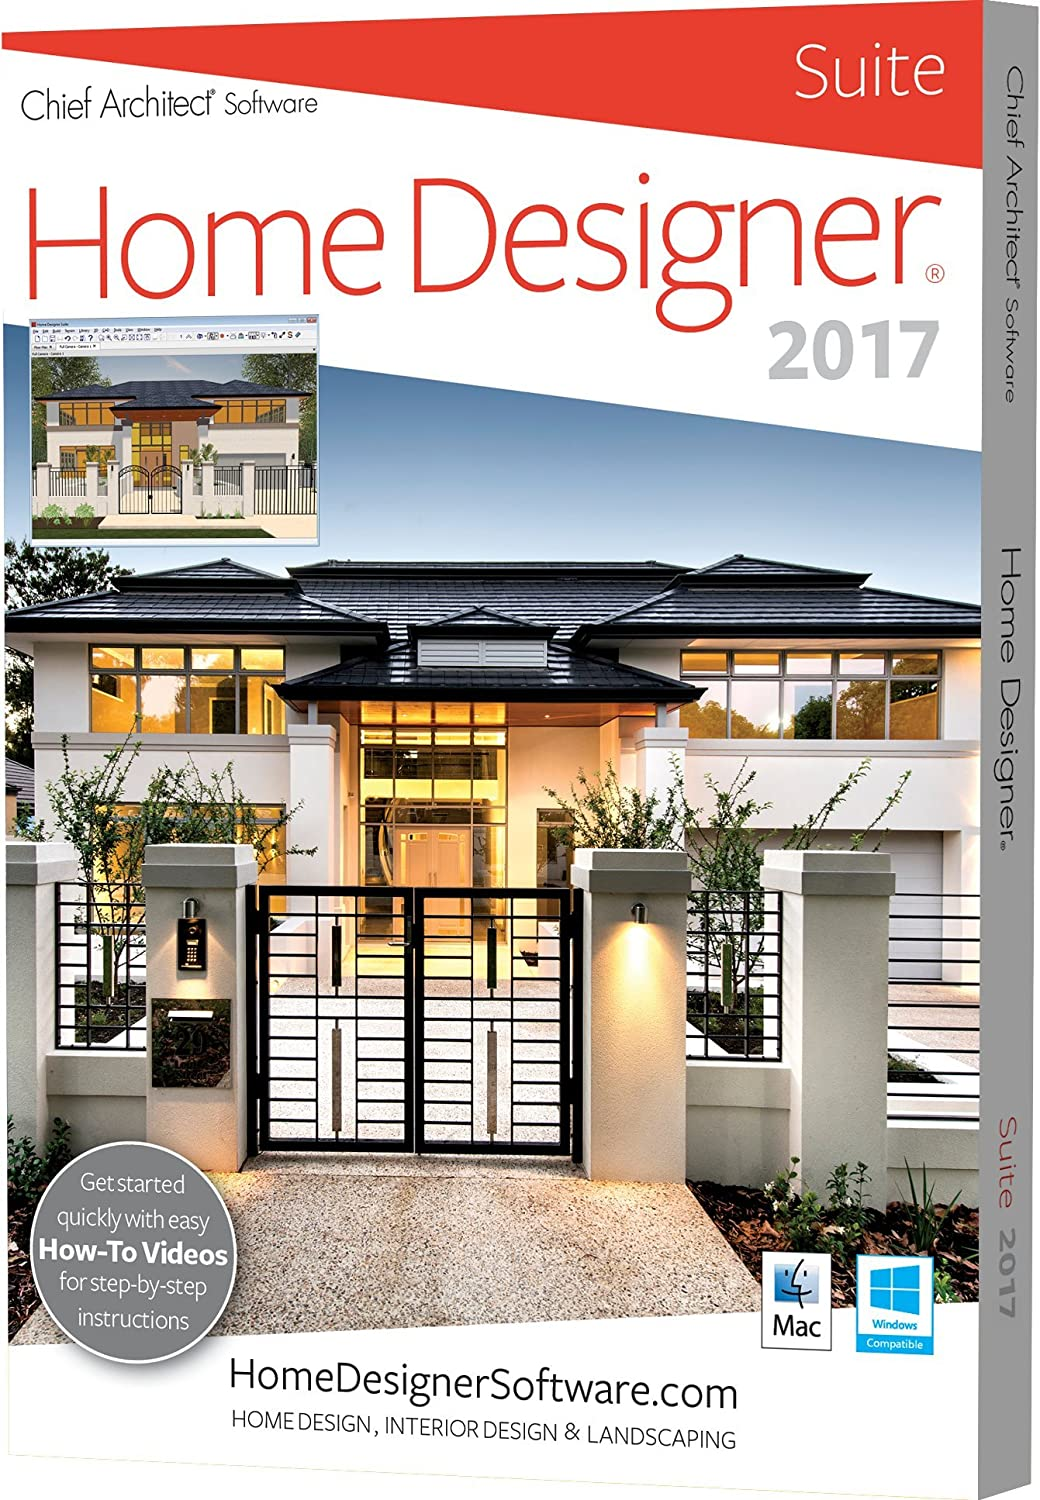 Amazoncom Chief Architect Home Designer Suite 2017 Software - home design suite 2016